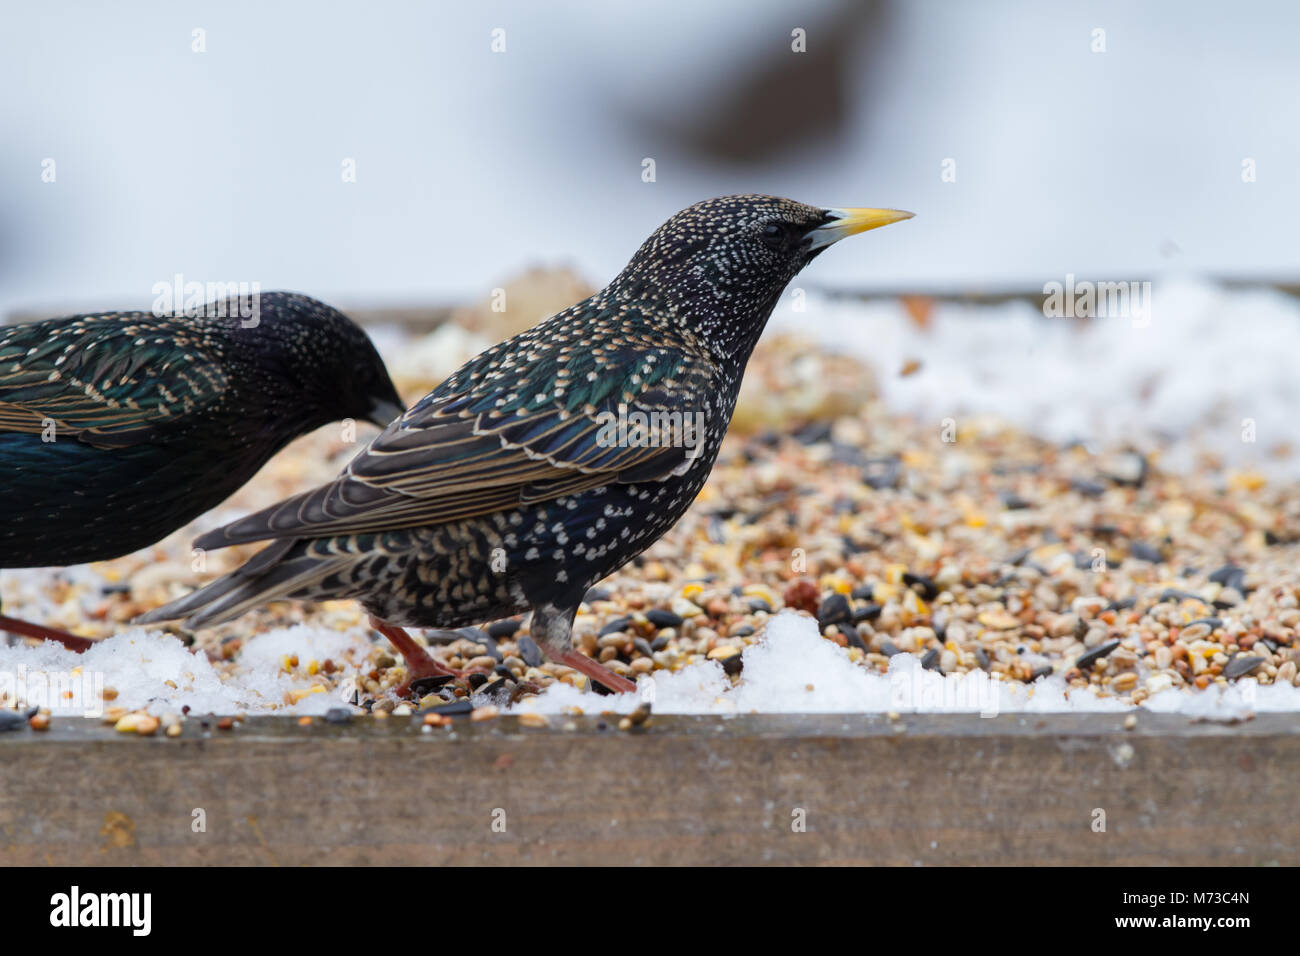 Starling. on snow covered bird table. British Isles. - Stock Image